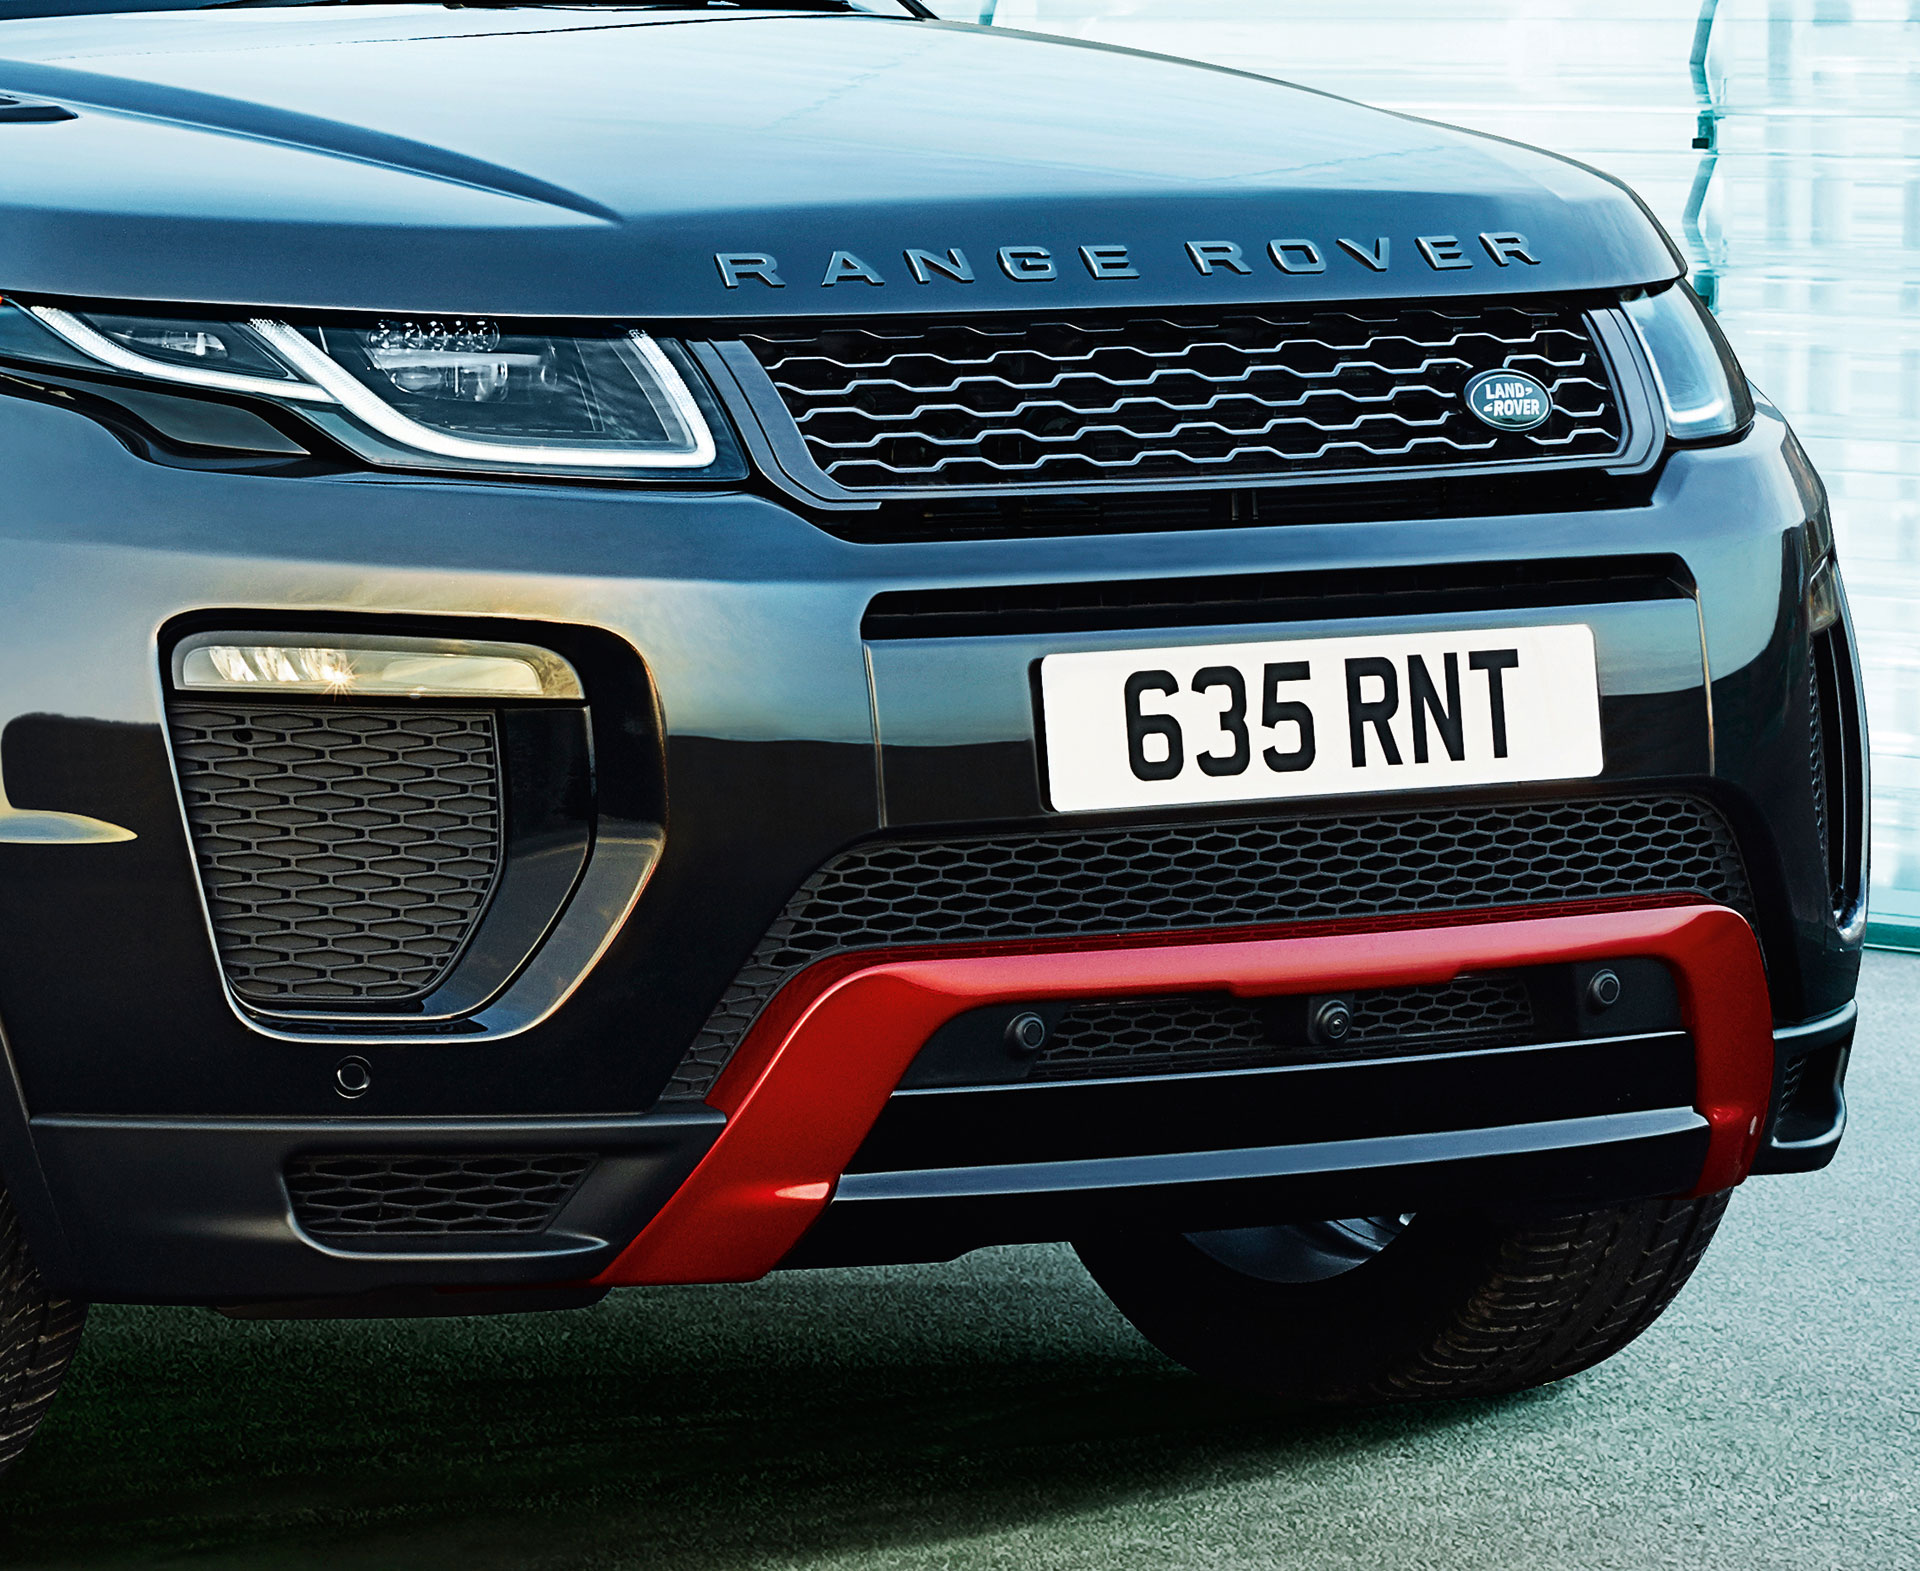 Range Rover Evoque - 2016 - front light / optique avant